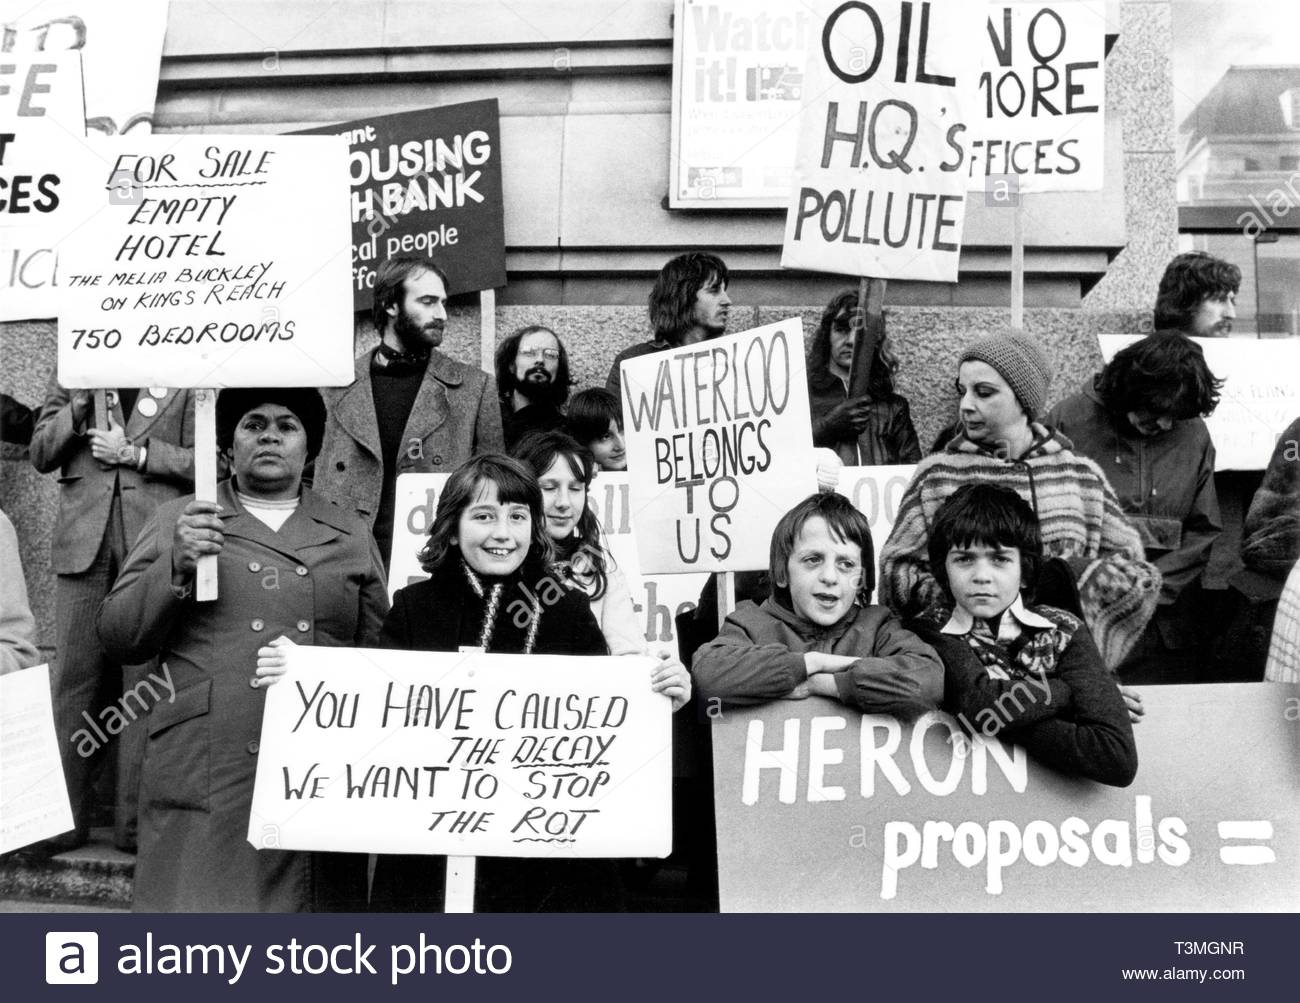 On the steps of County Hall, London, local residents of Waterloo protest about plans by the GLC (Greater London Council) to allow a hotel and offices to be built on the Coin Street sites of London's South Bank. 15 November 1977 - Stock Image